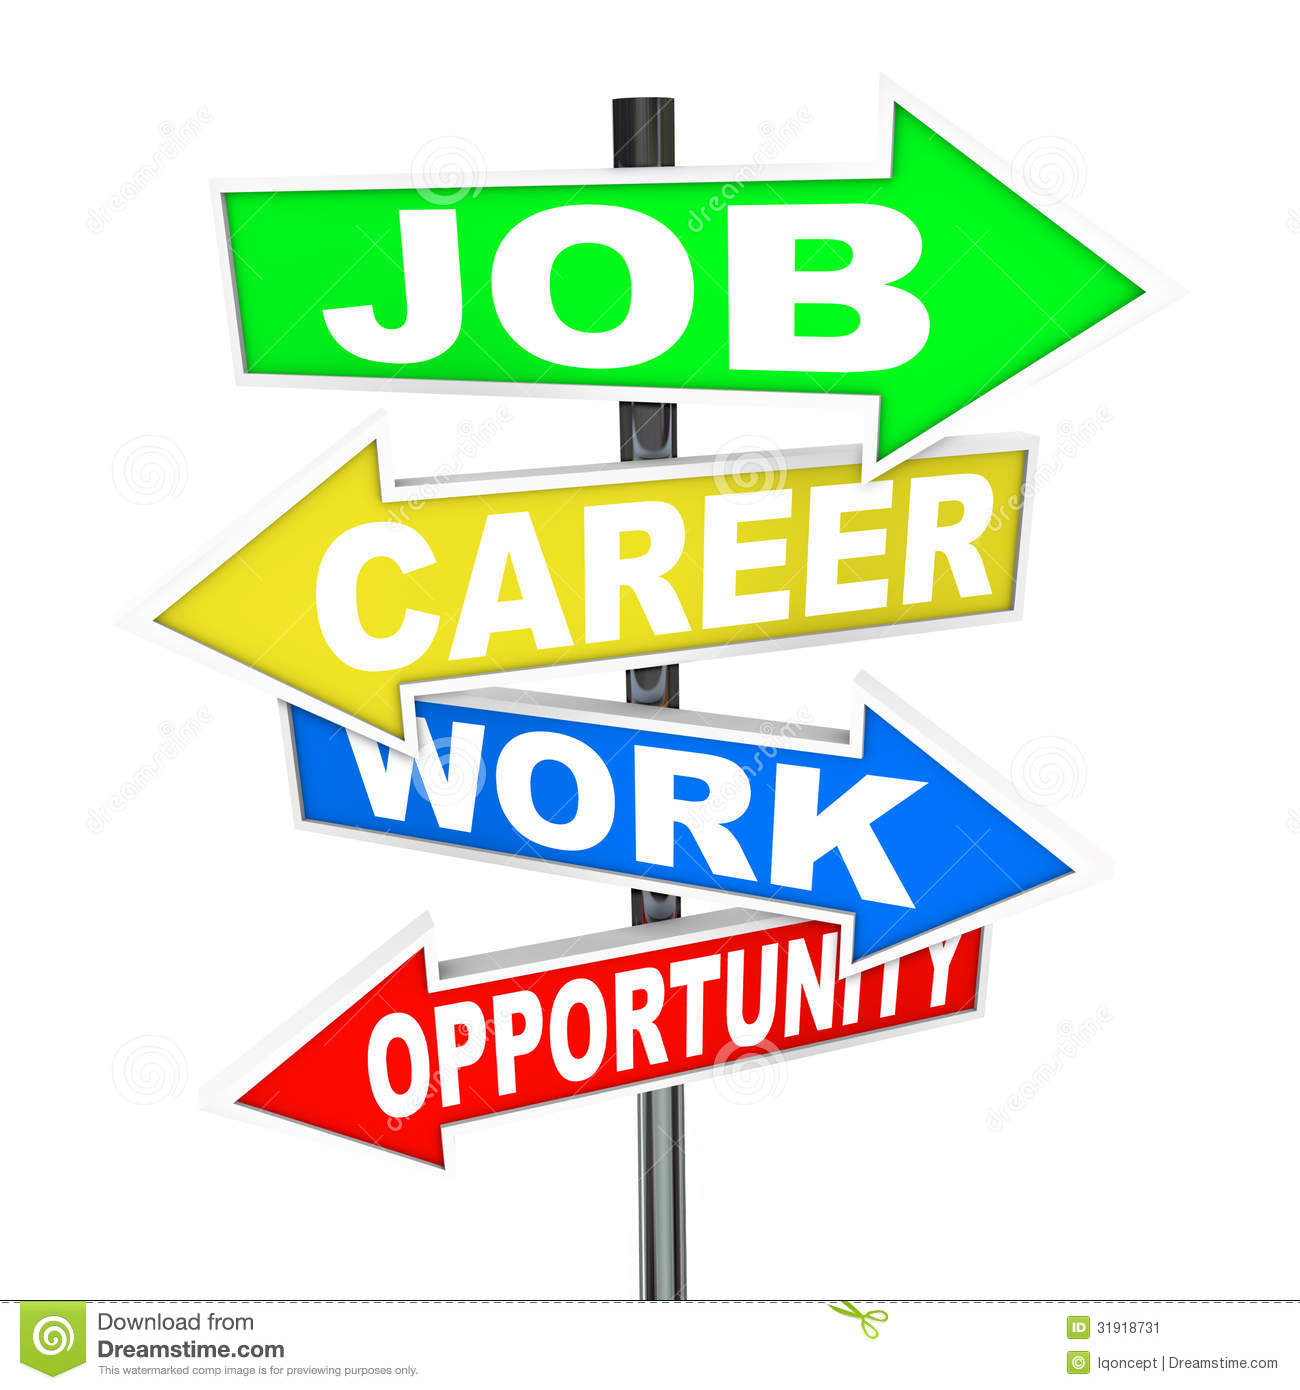 Acupuncture education opportunities best. Careers clipart career guidance